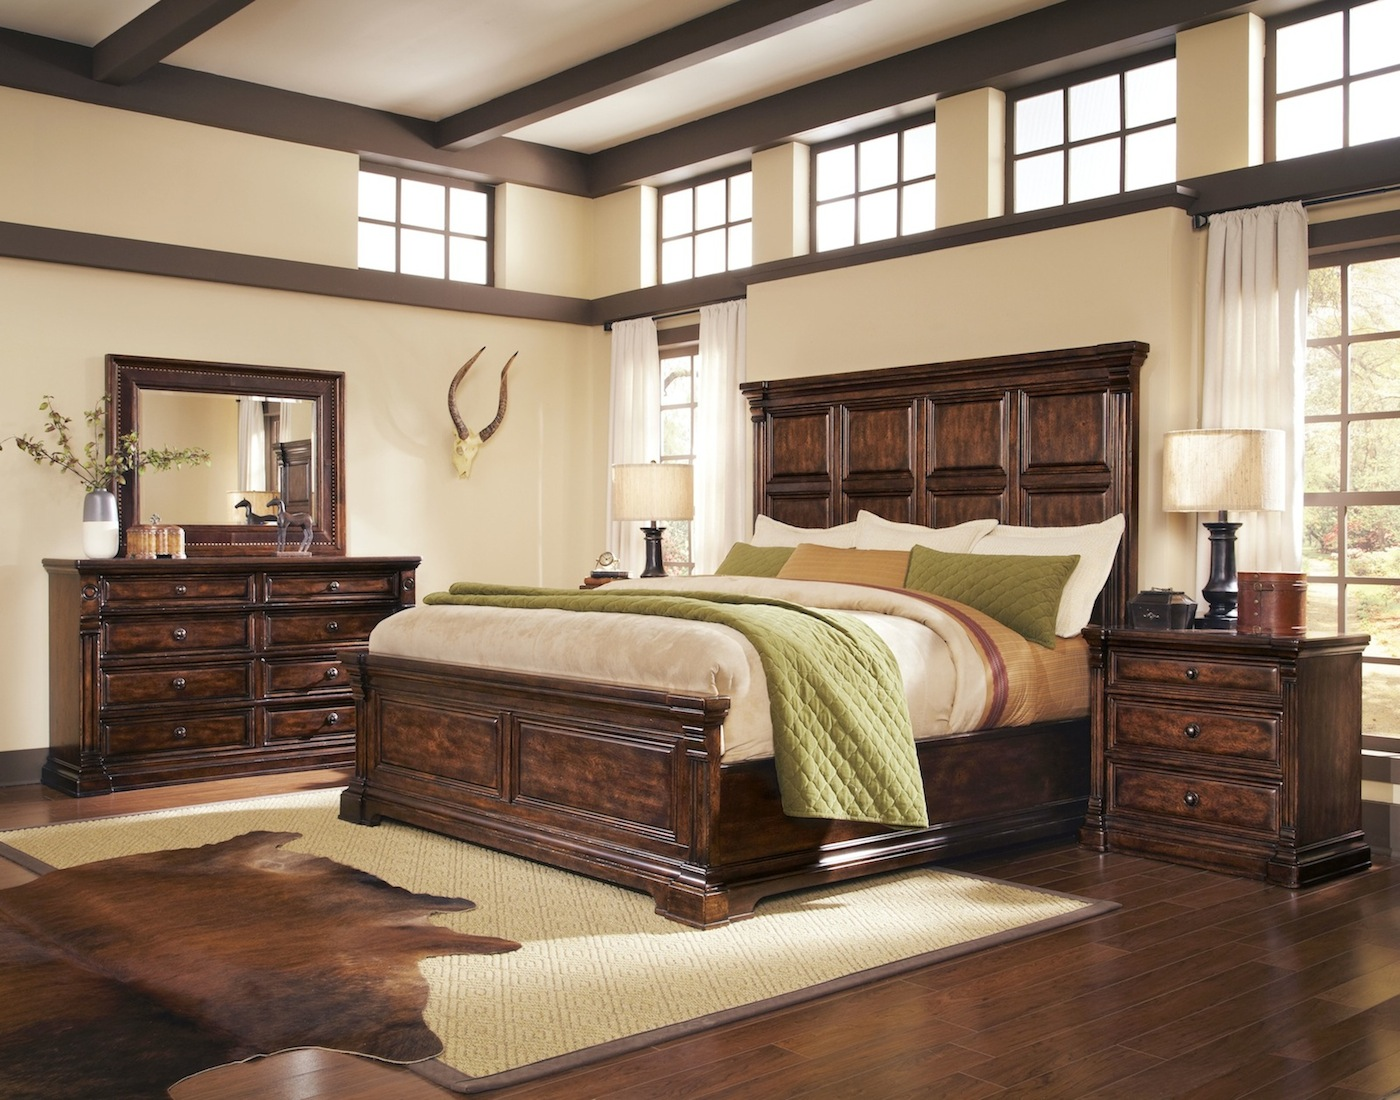 Whiskey oak rustic inspired wooden panel bedroom set 205000 for I need bedroom furniture